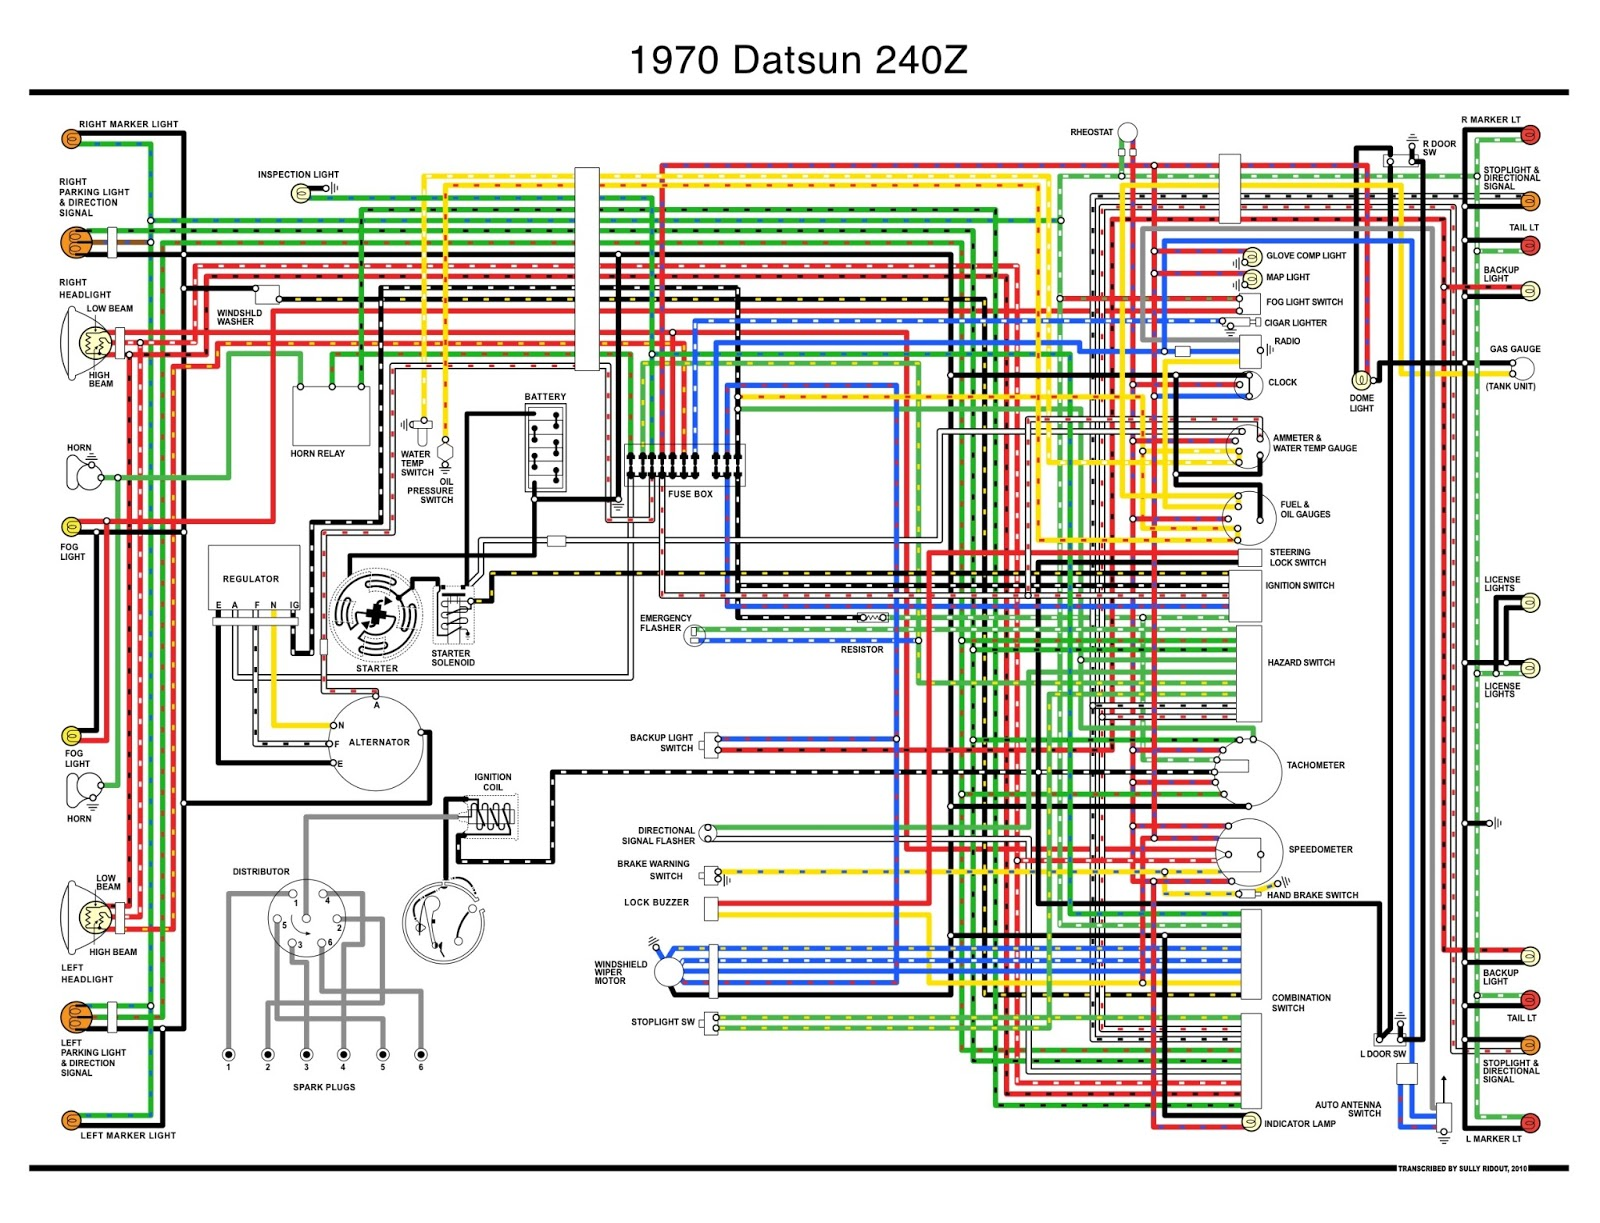 260z fuse diagram wiring diagram img260z fuse diagram wiring diagram basic 260z fuse diagram [ 1600 x 1223 Pixel ]